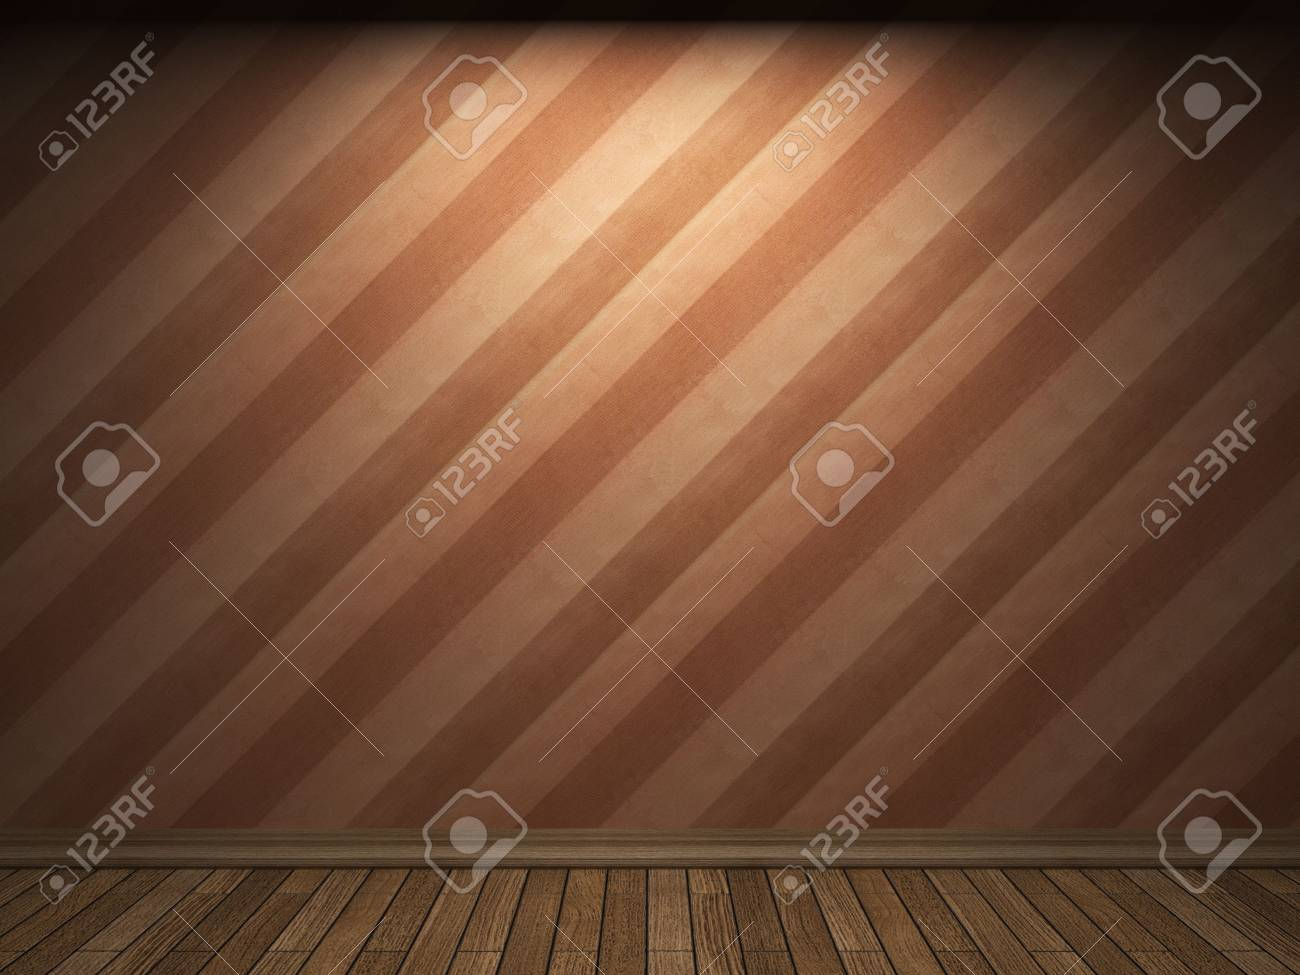 illuminated fabric wallpaper made in 3D graphics Stock Photo - 6654026